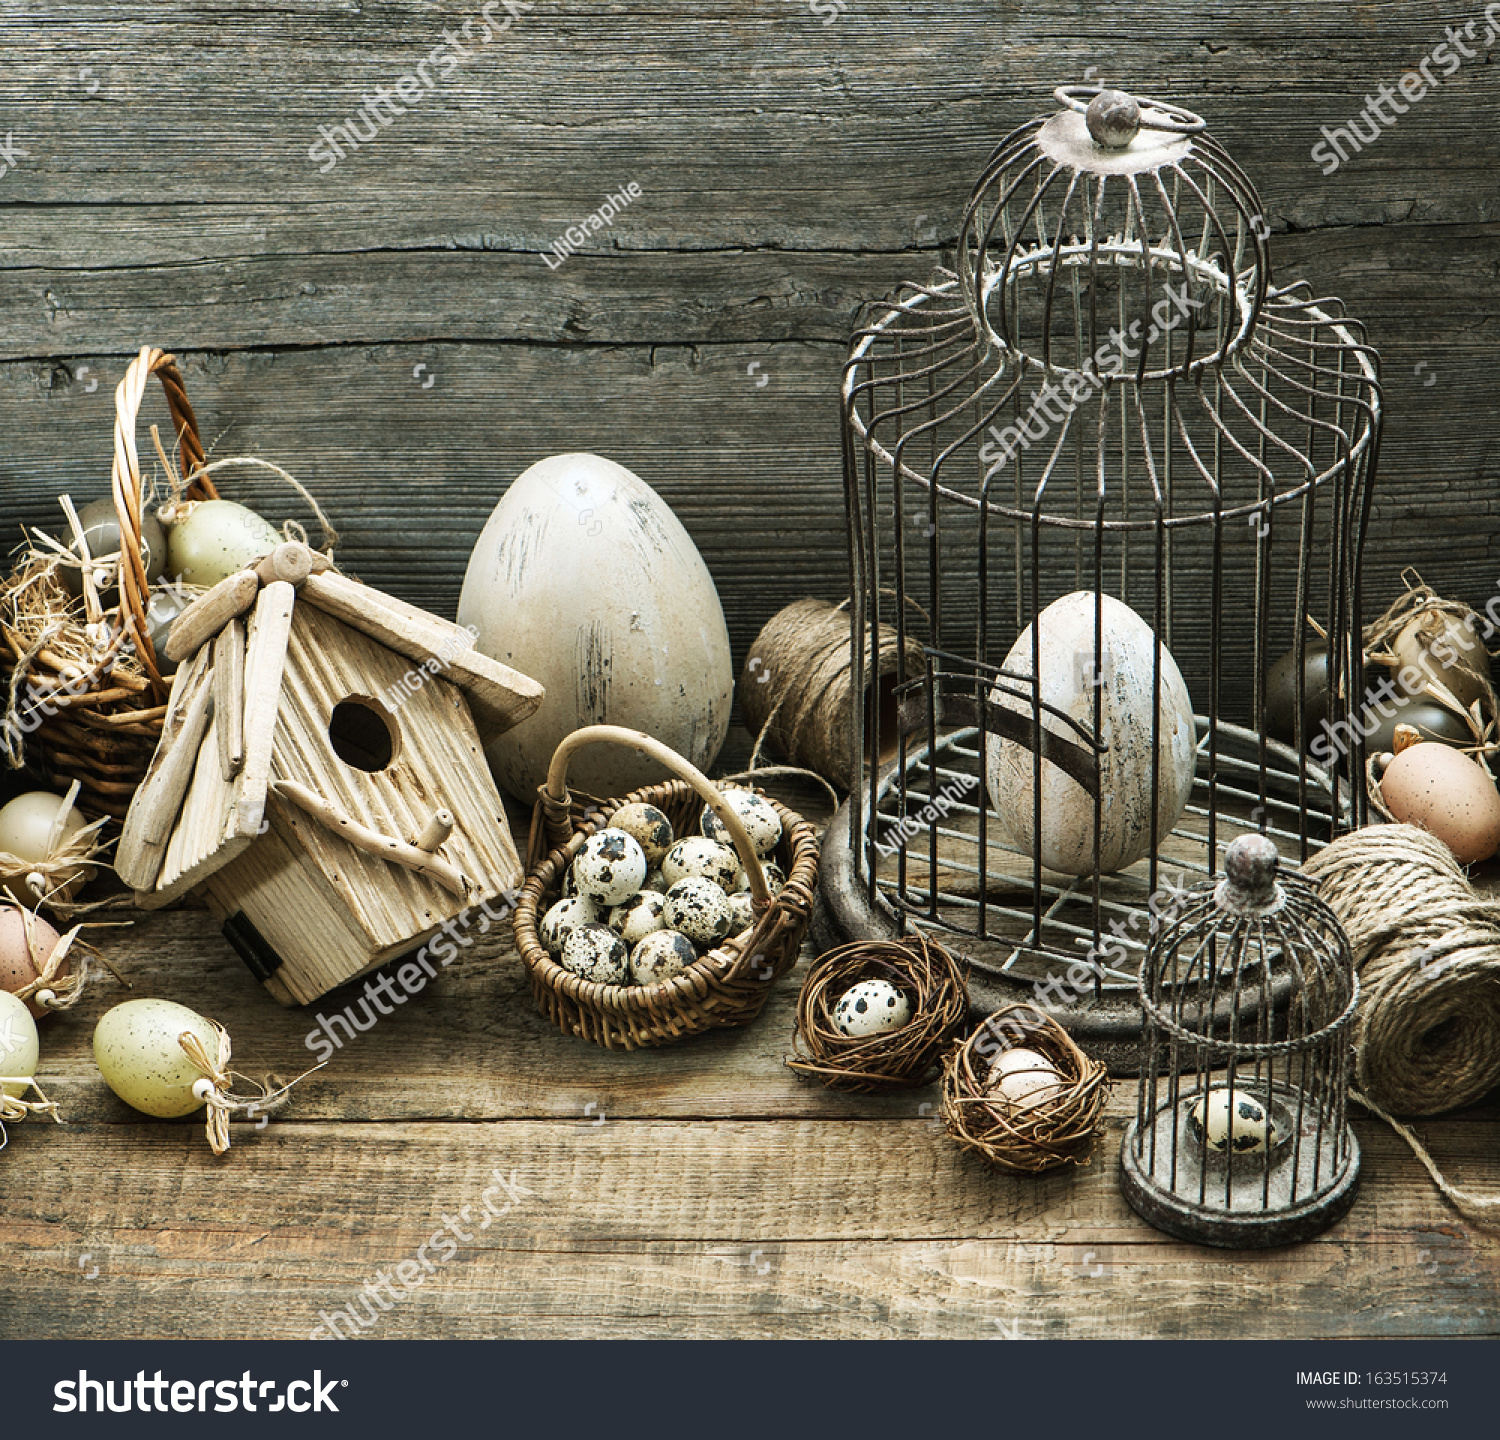 Vintage Easter Decoration With Eggs, Birdhouse And Birdcage. Nostalgic  Country Style Home Interior